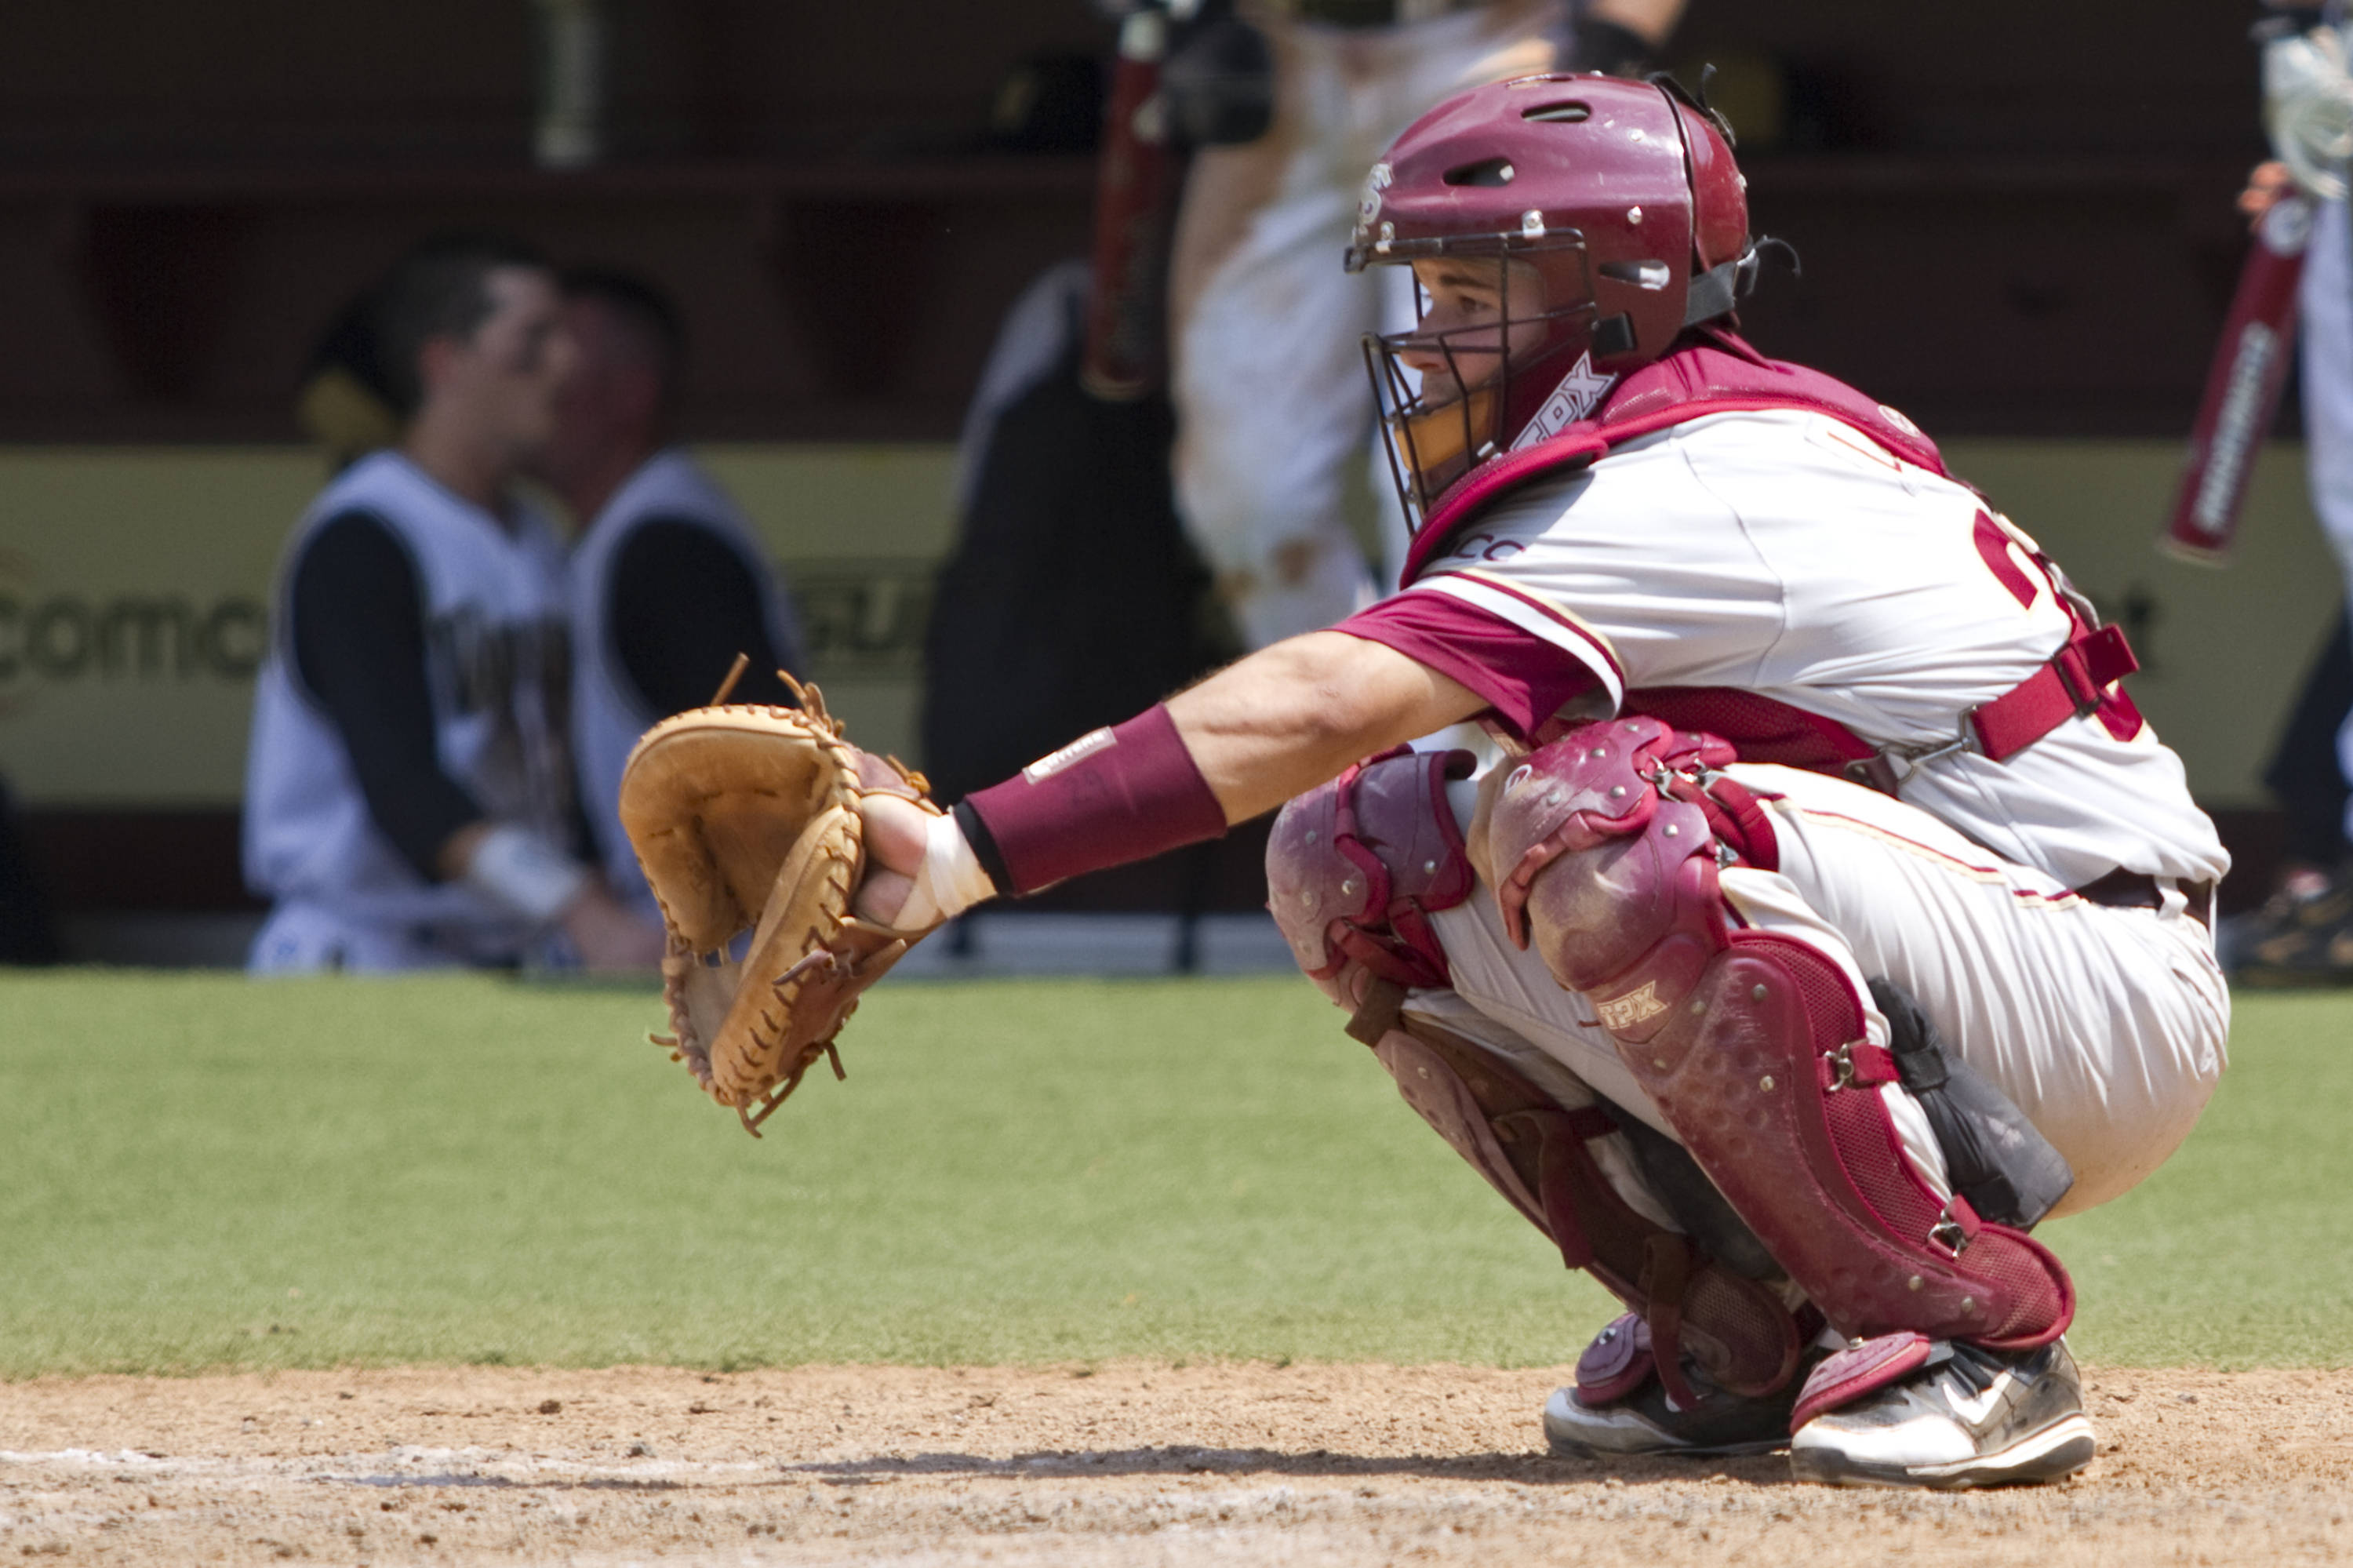 Rafael Lopez (29), catching for FSU in the bottom of the eighth inning.